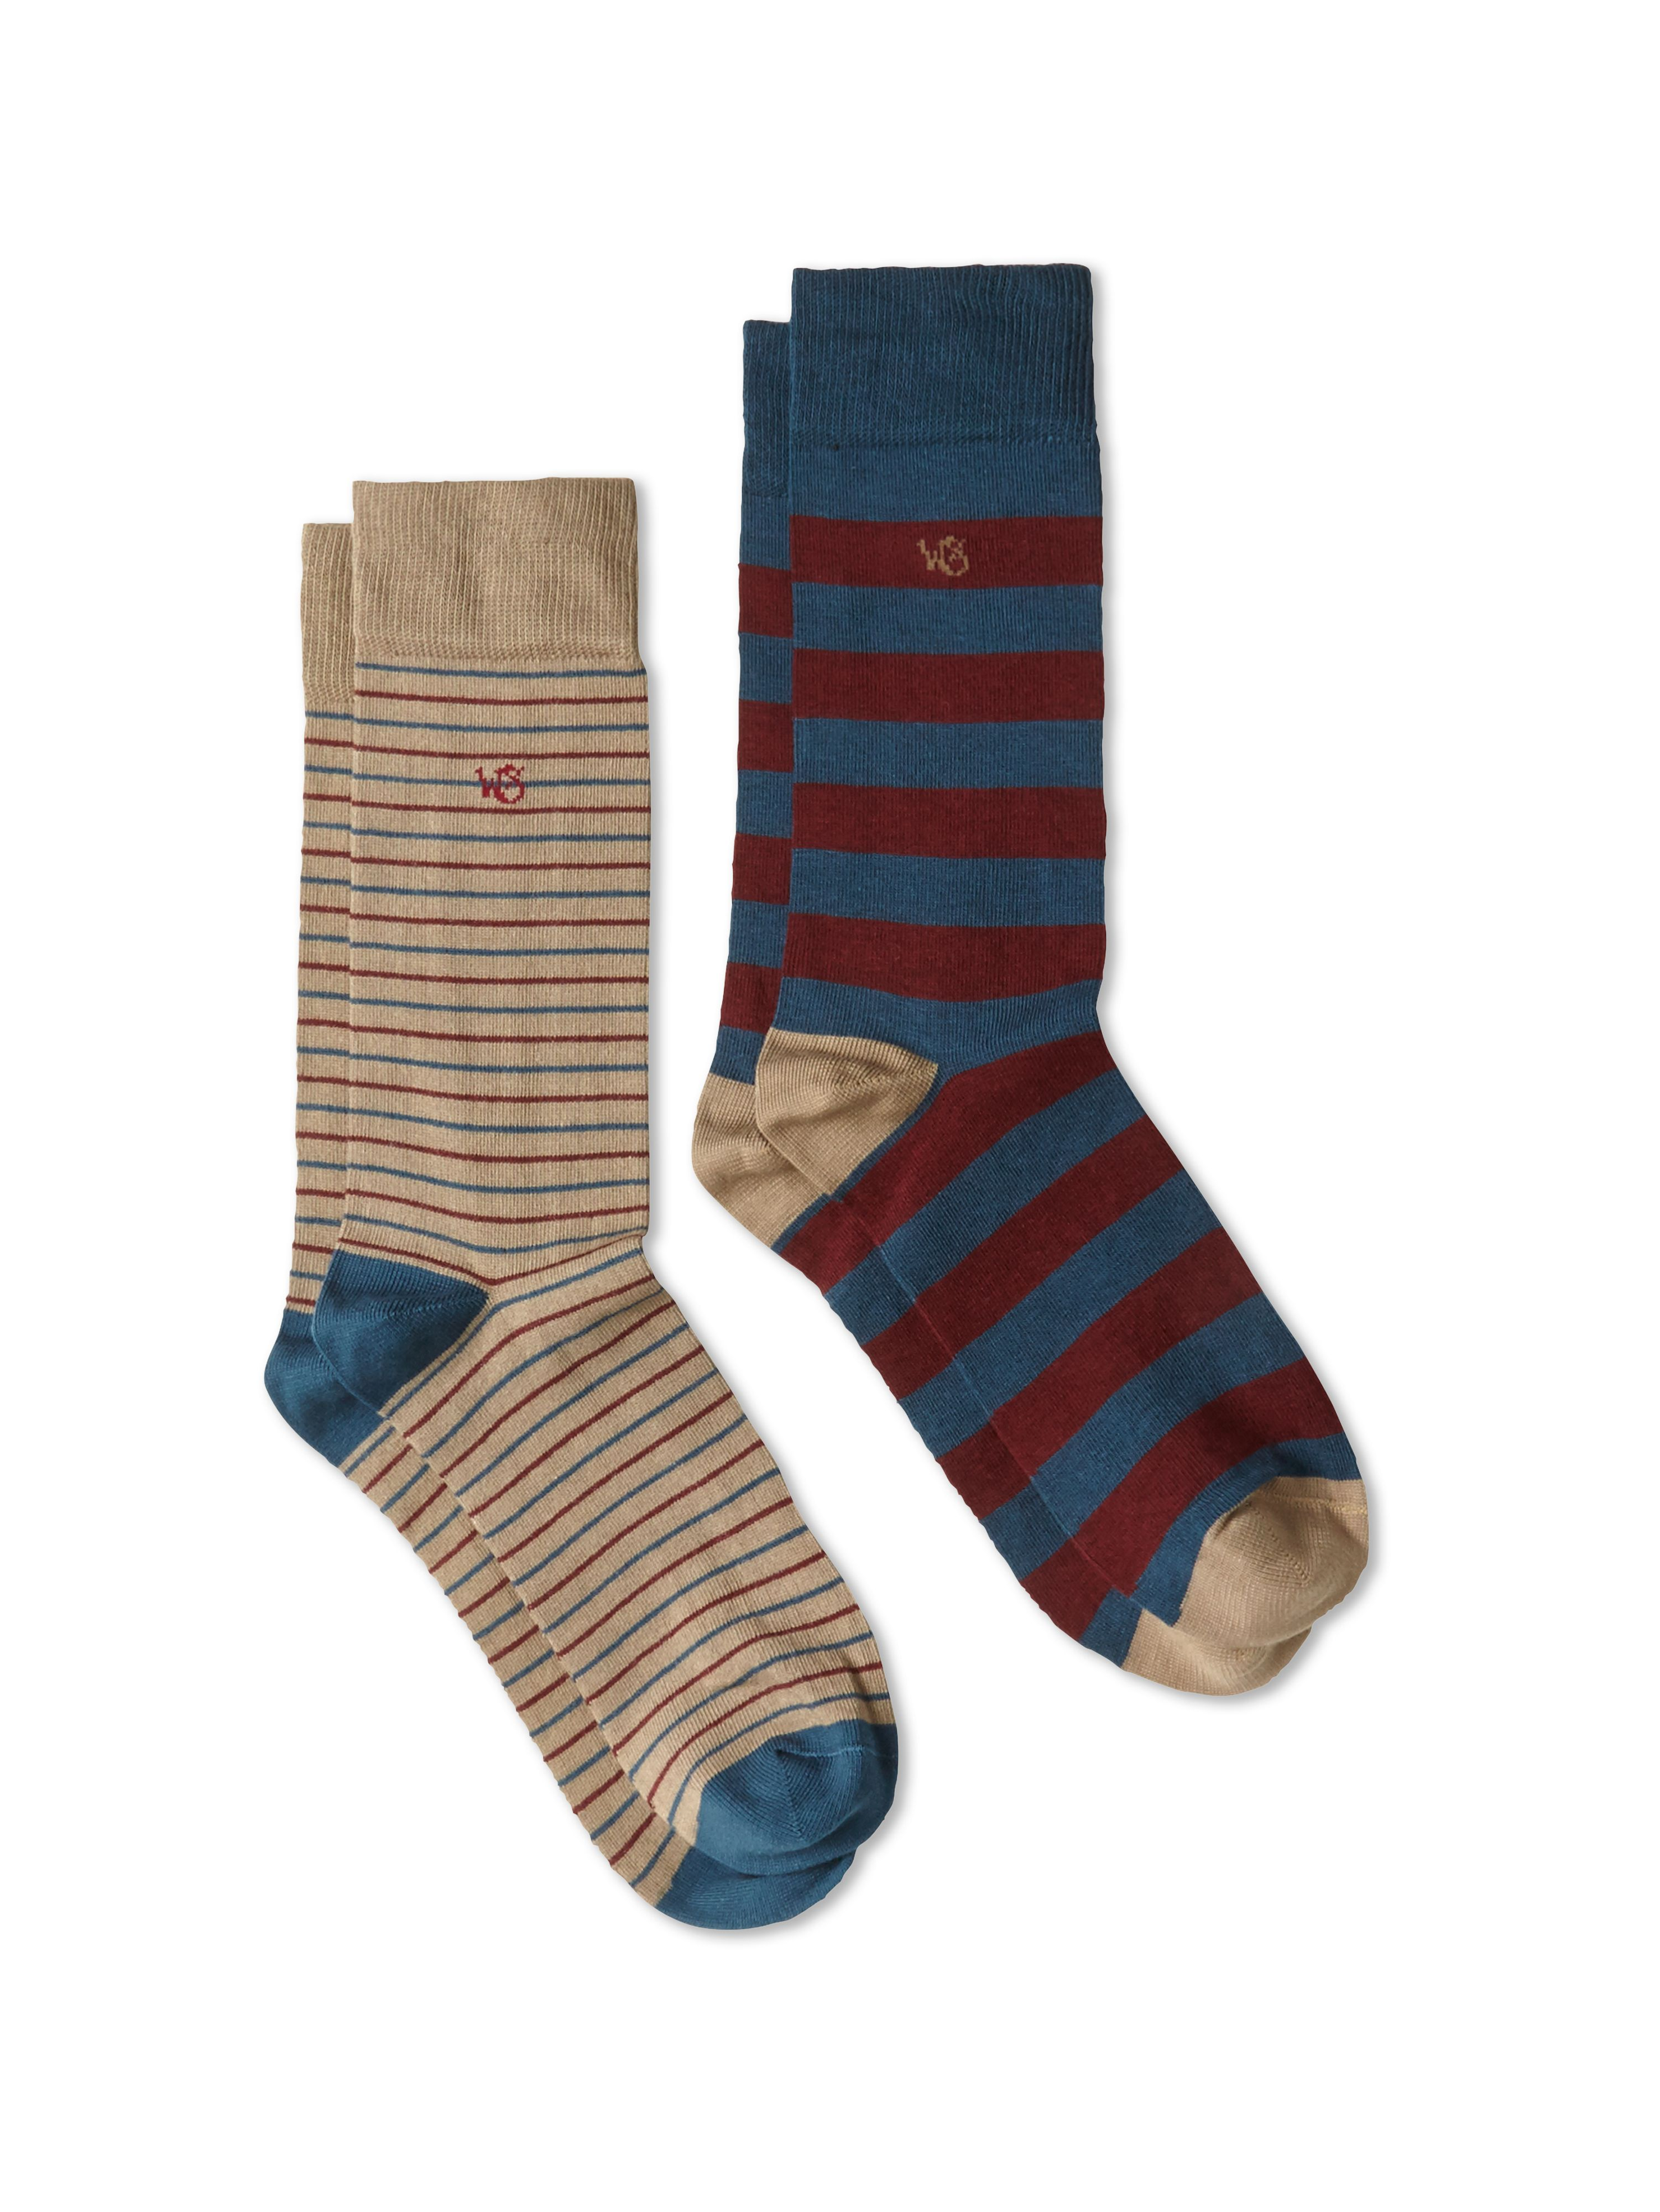 Wally 2 pack socks